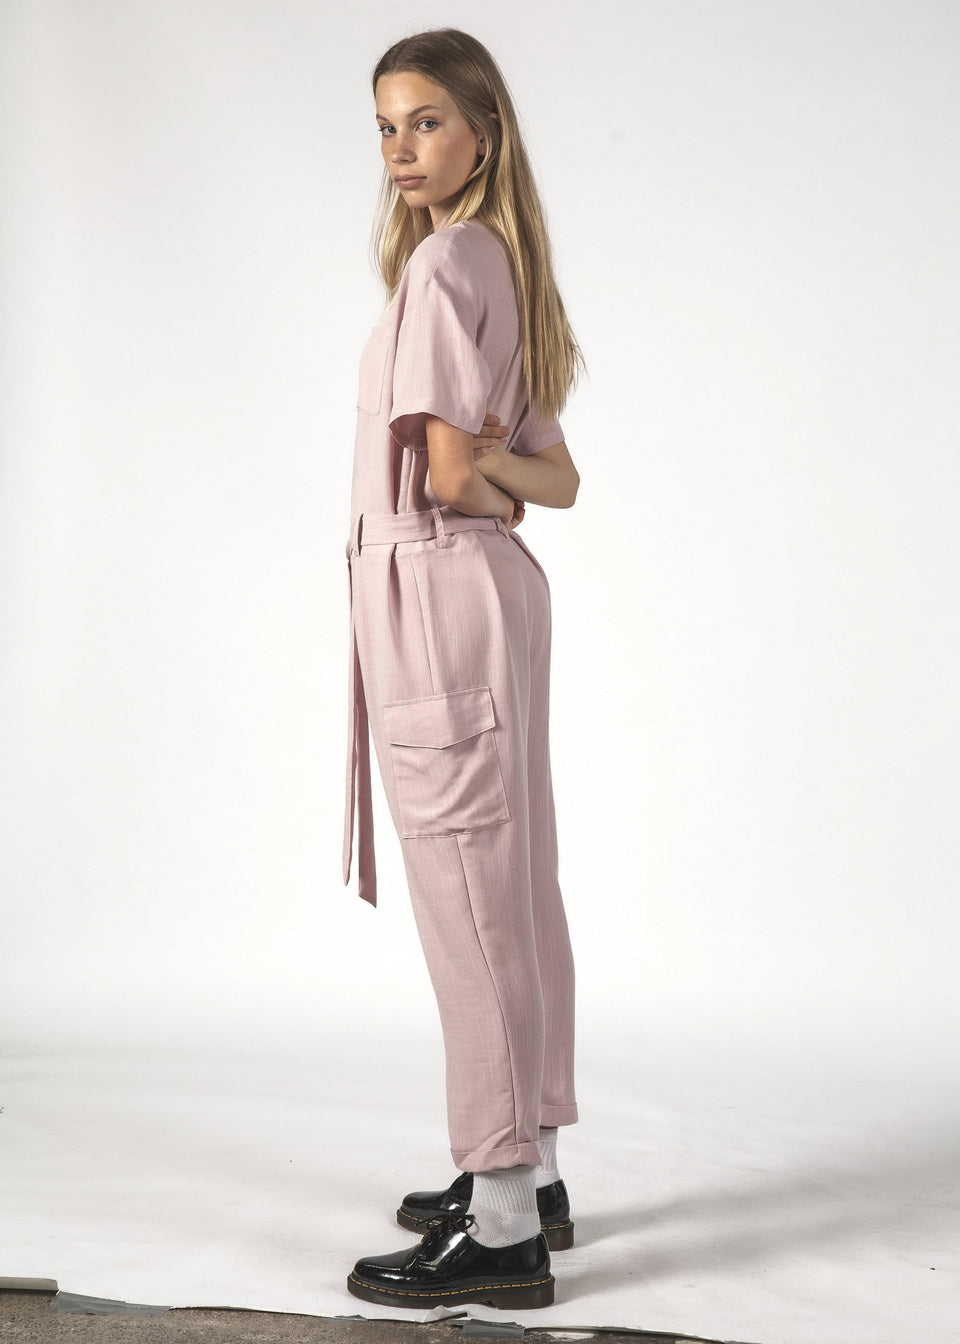 Thing Thing Raffy Jumpsuit Dusty Pink Linen - Stencil